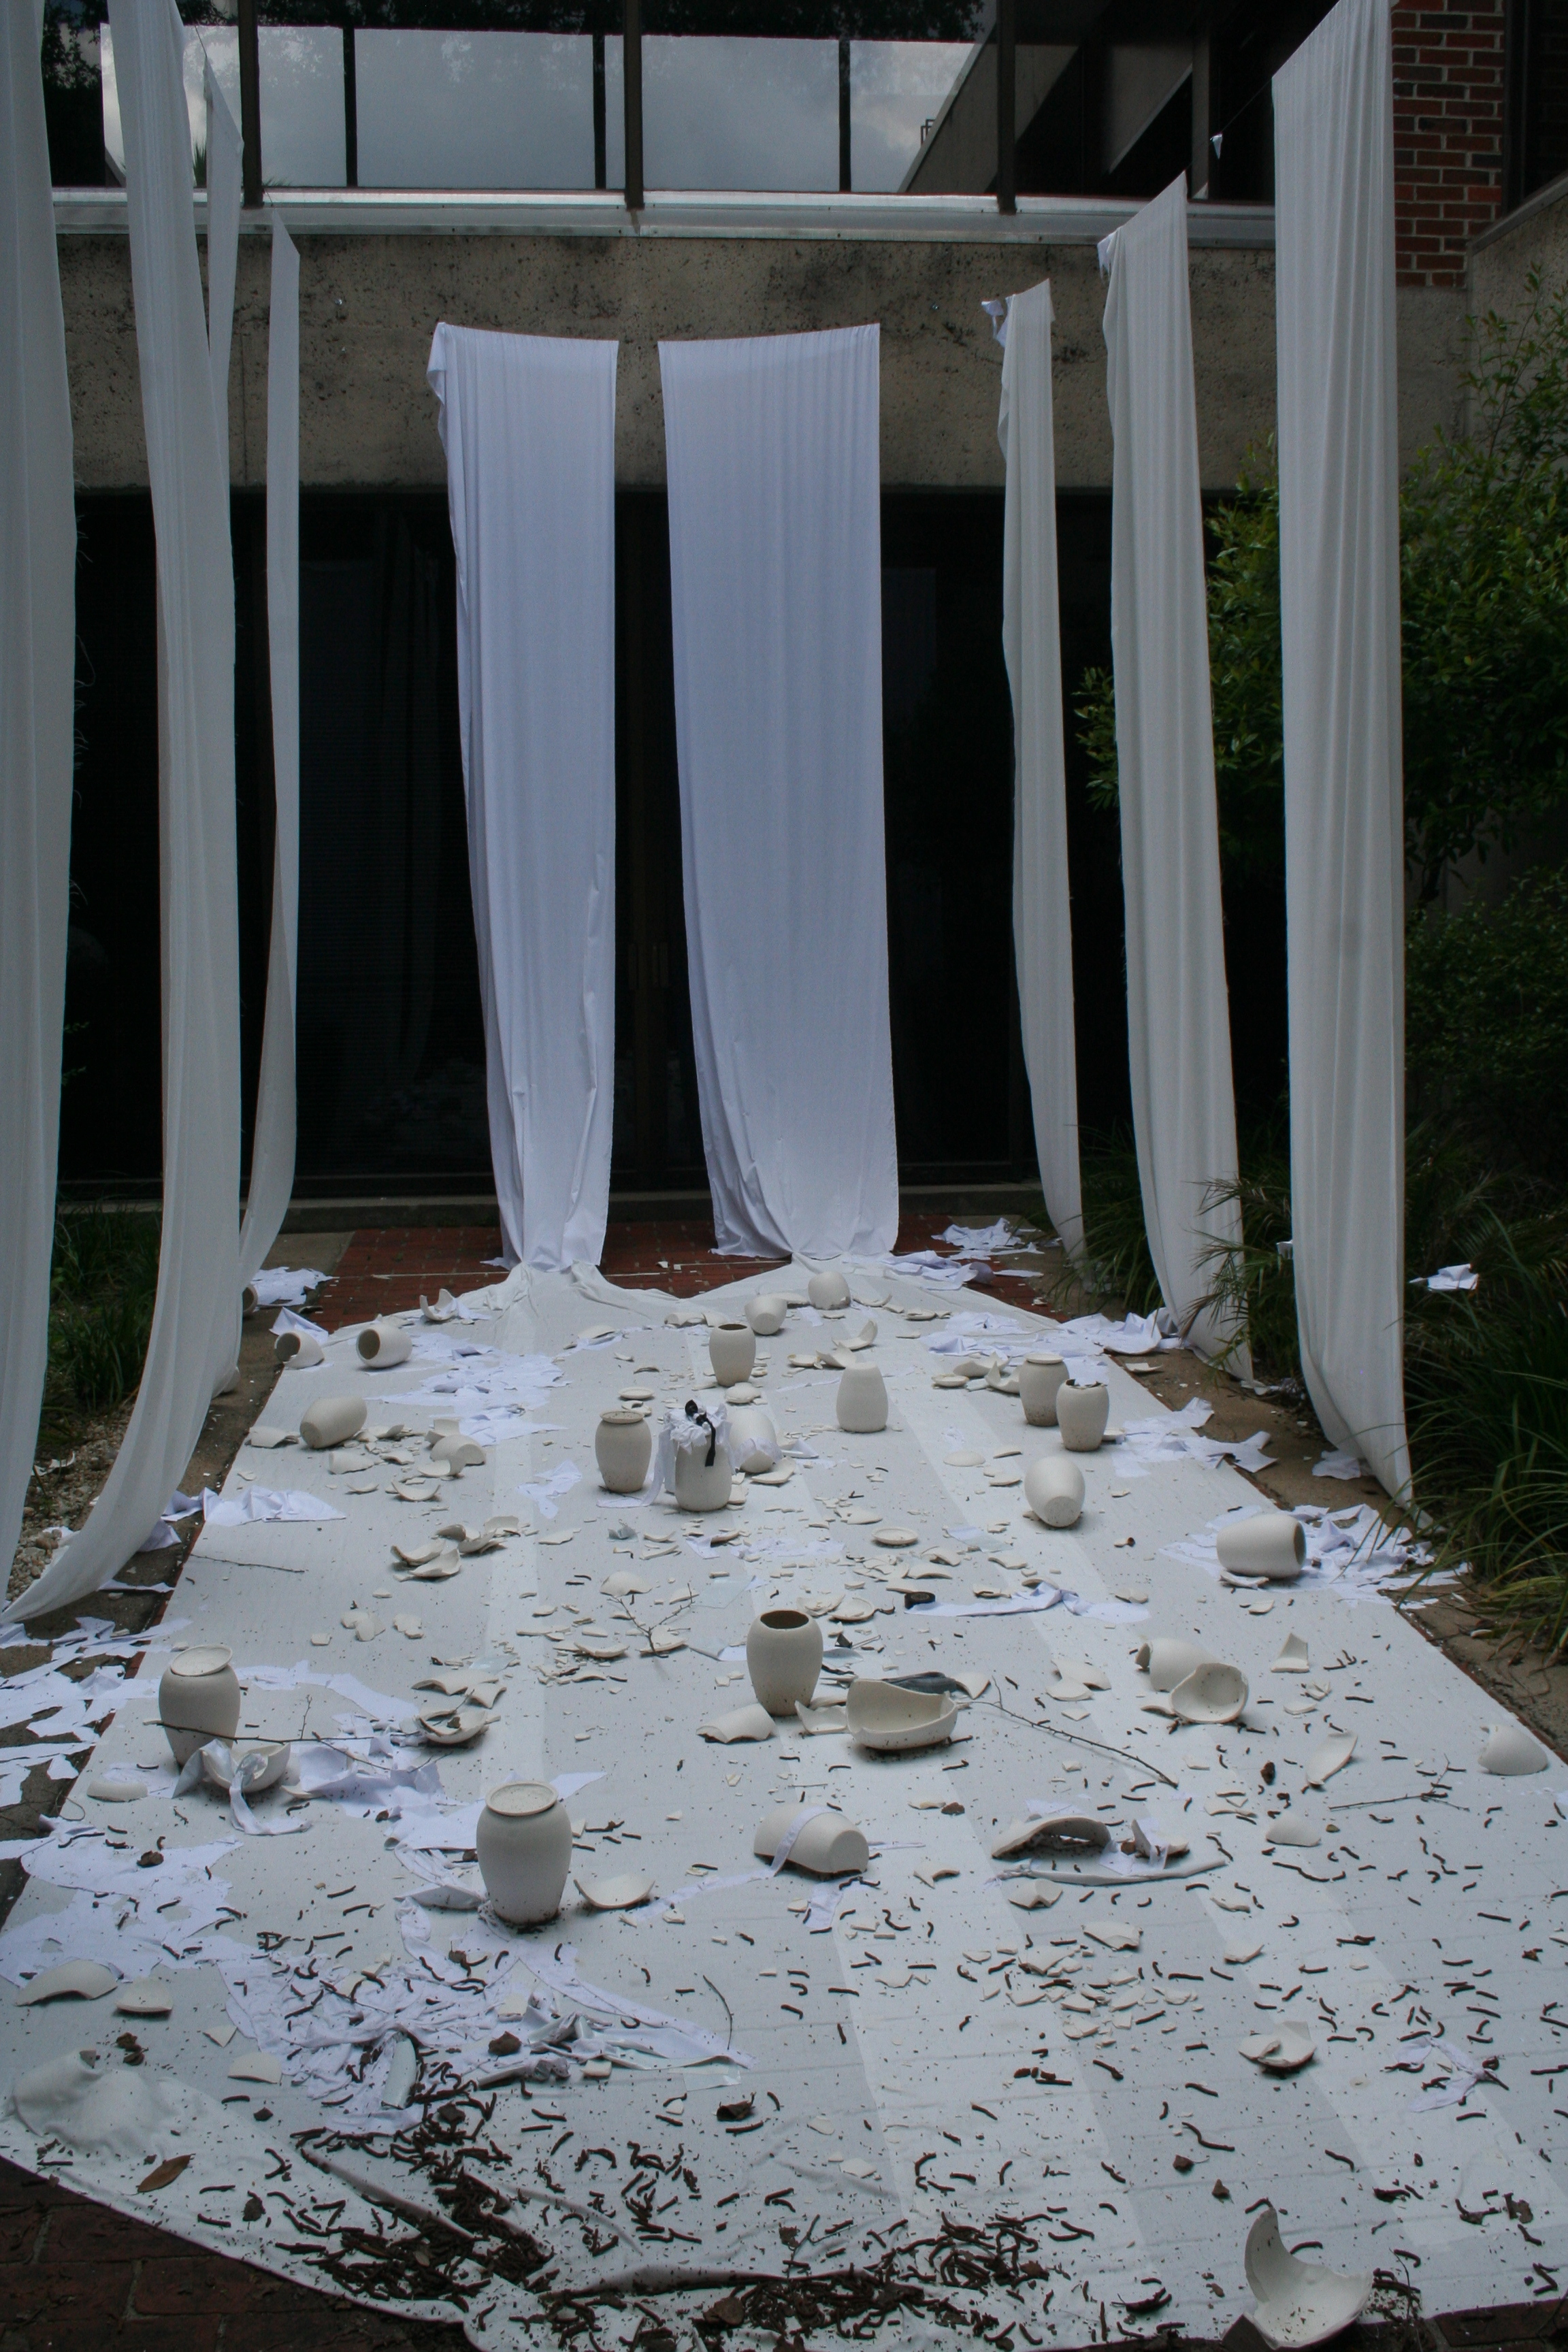 several broken pieces of pottery scattered on a white blanket